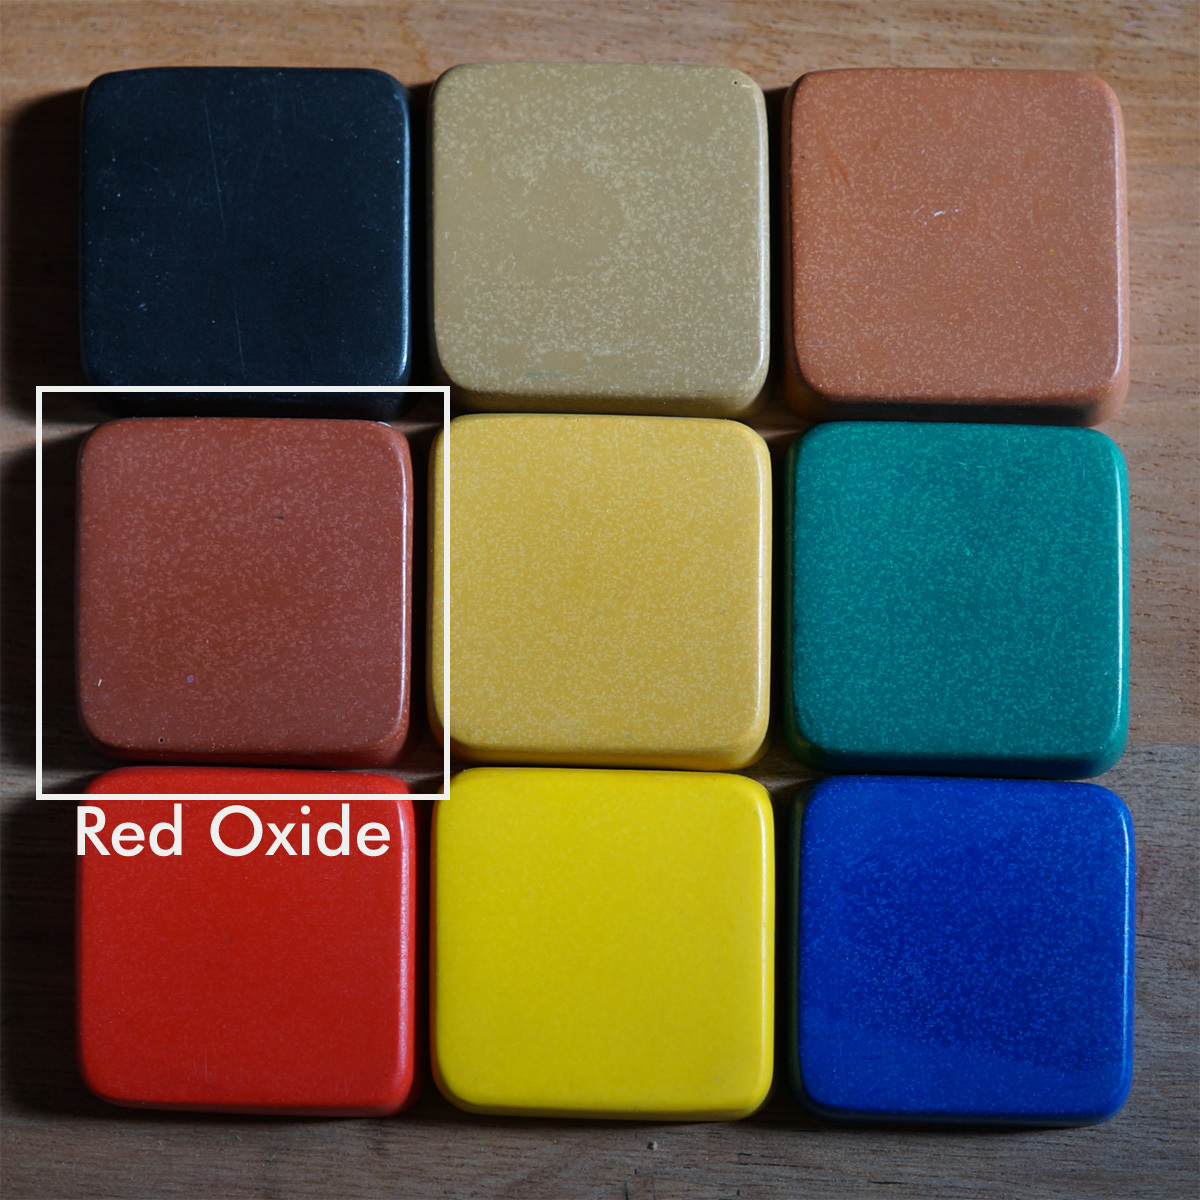 PIGMENT RED OXIDE 1kg(着色剤:レッドオキサイド 1kg) - 画像2